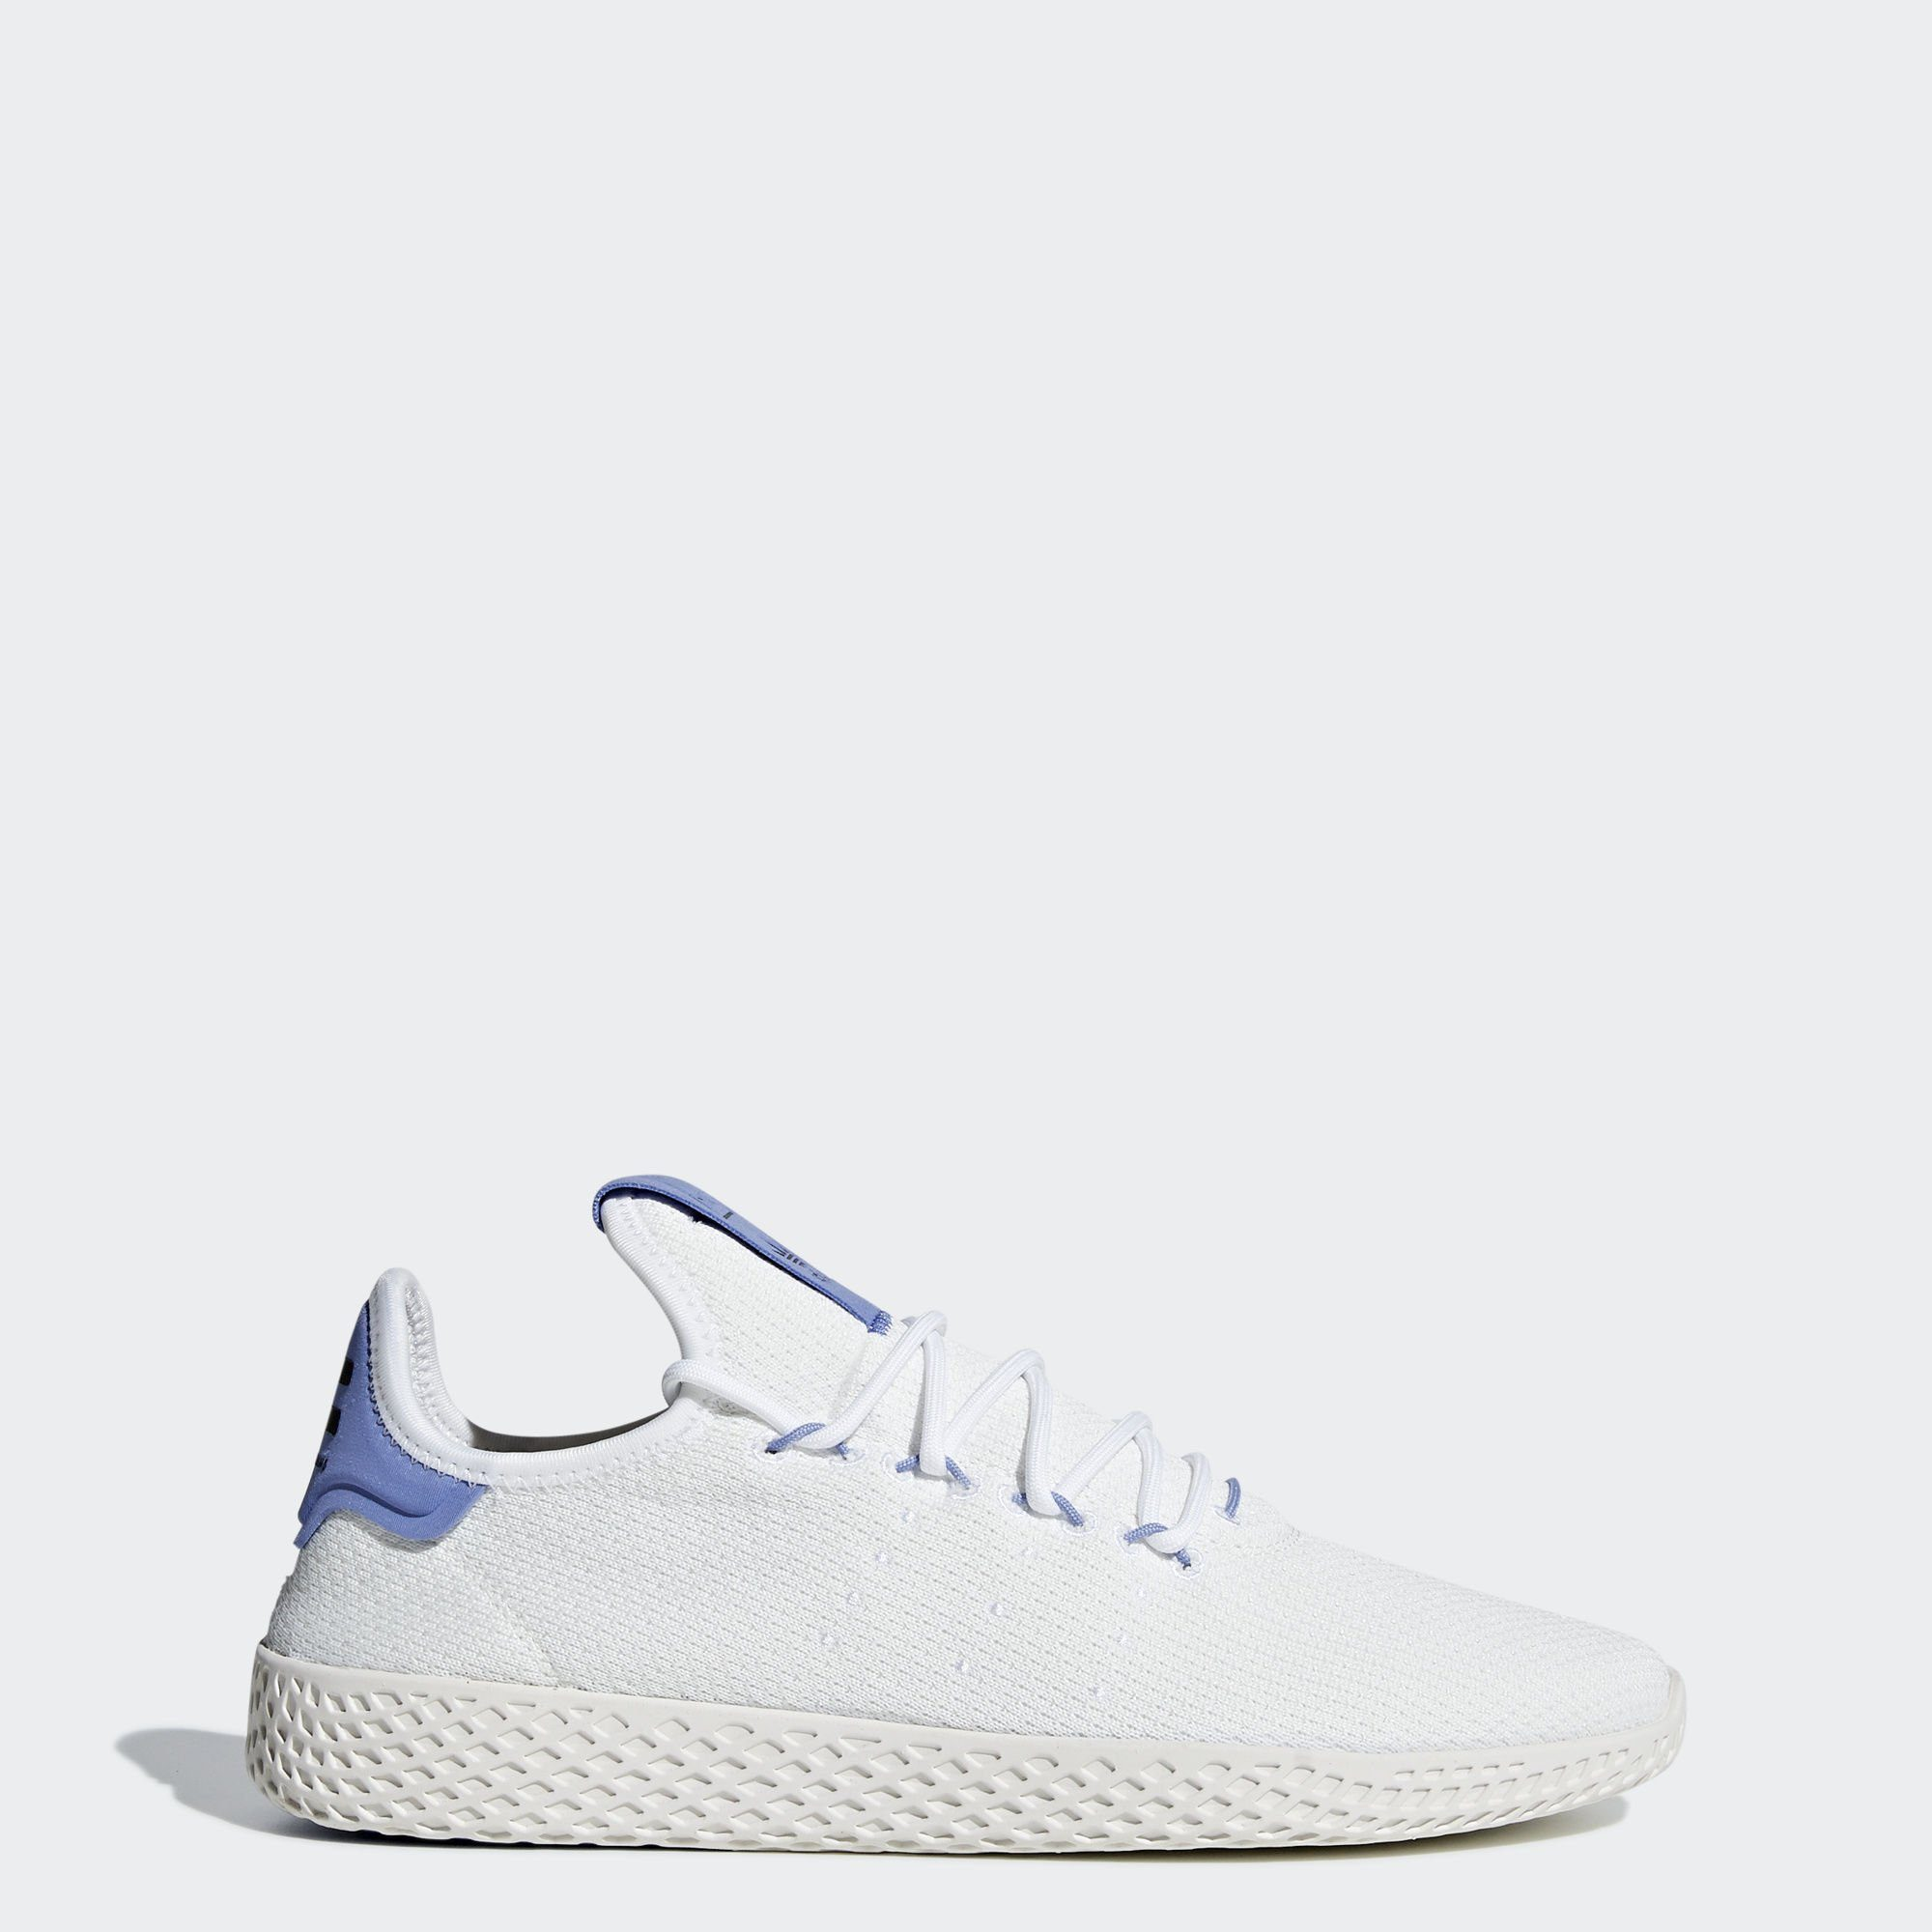 adidas Originals »Pharrell Williams Tennis HU Schuh« Sneaker online kaufen | OTTO